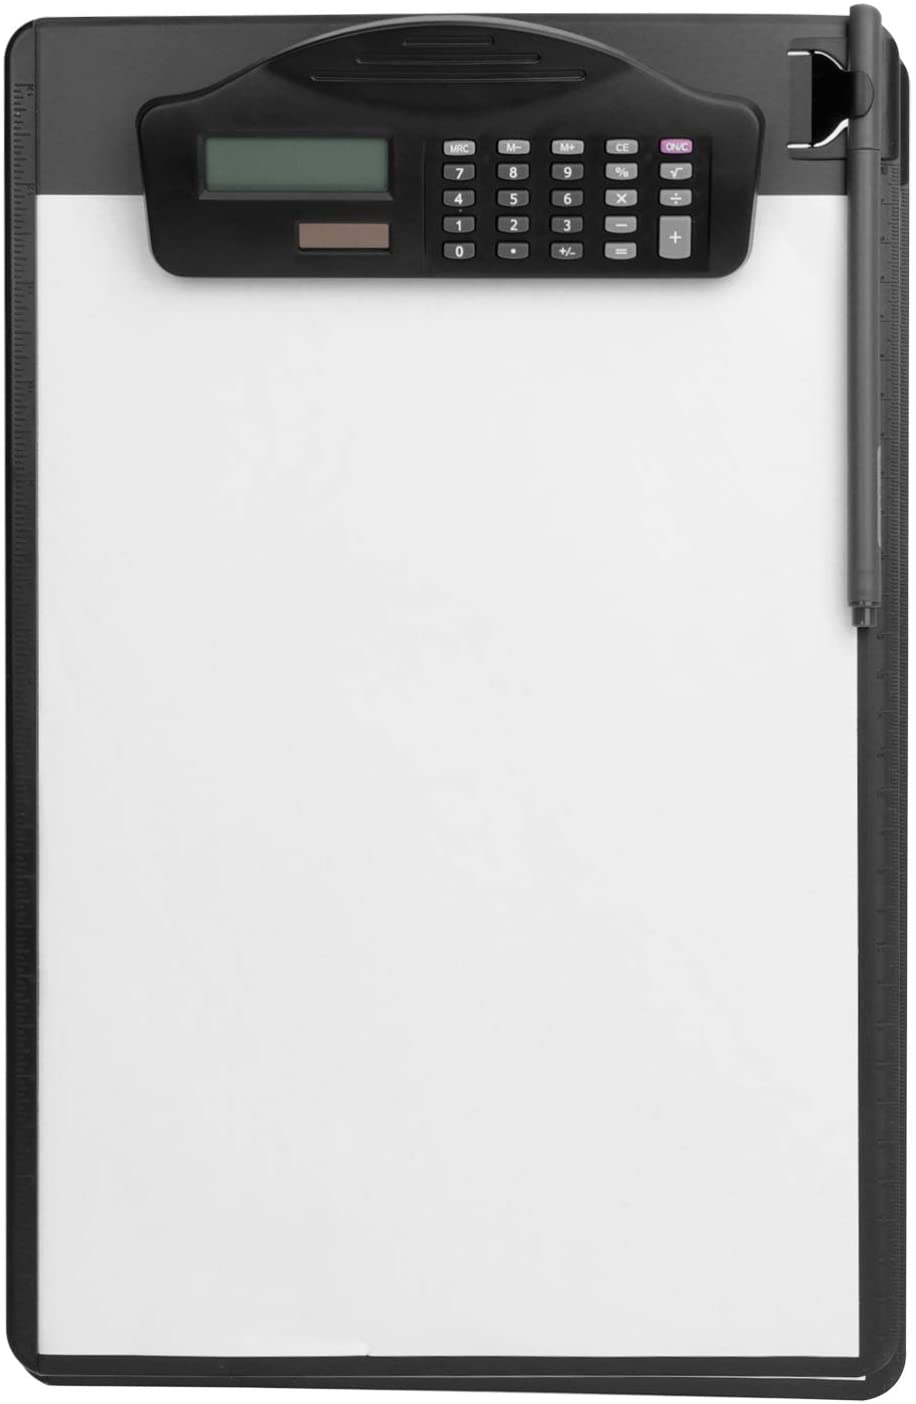 Multifunctional Clipboard with Calculator Plastic Storage Clipboard Pen Clip Writing Pad File Folders Business Office Document Holder A4 Letter Size Clipboard for School Meeting Classes